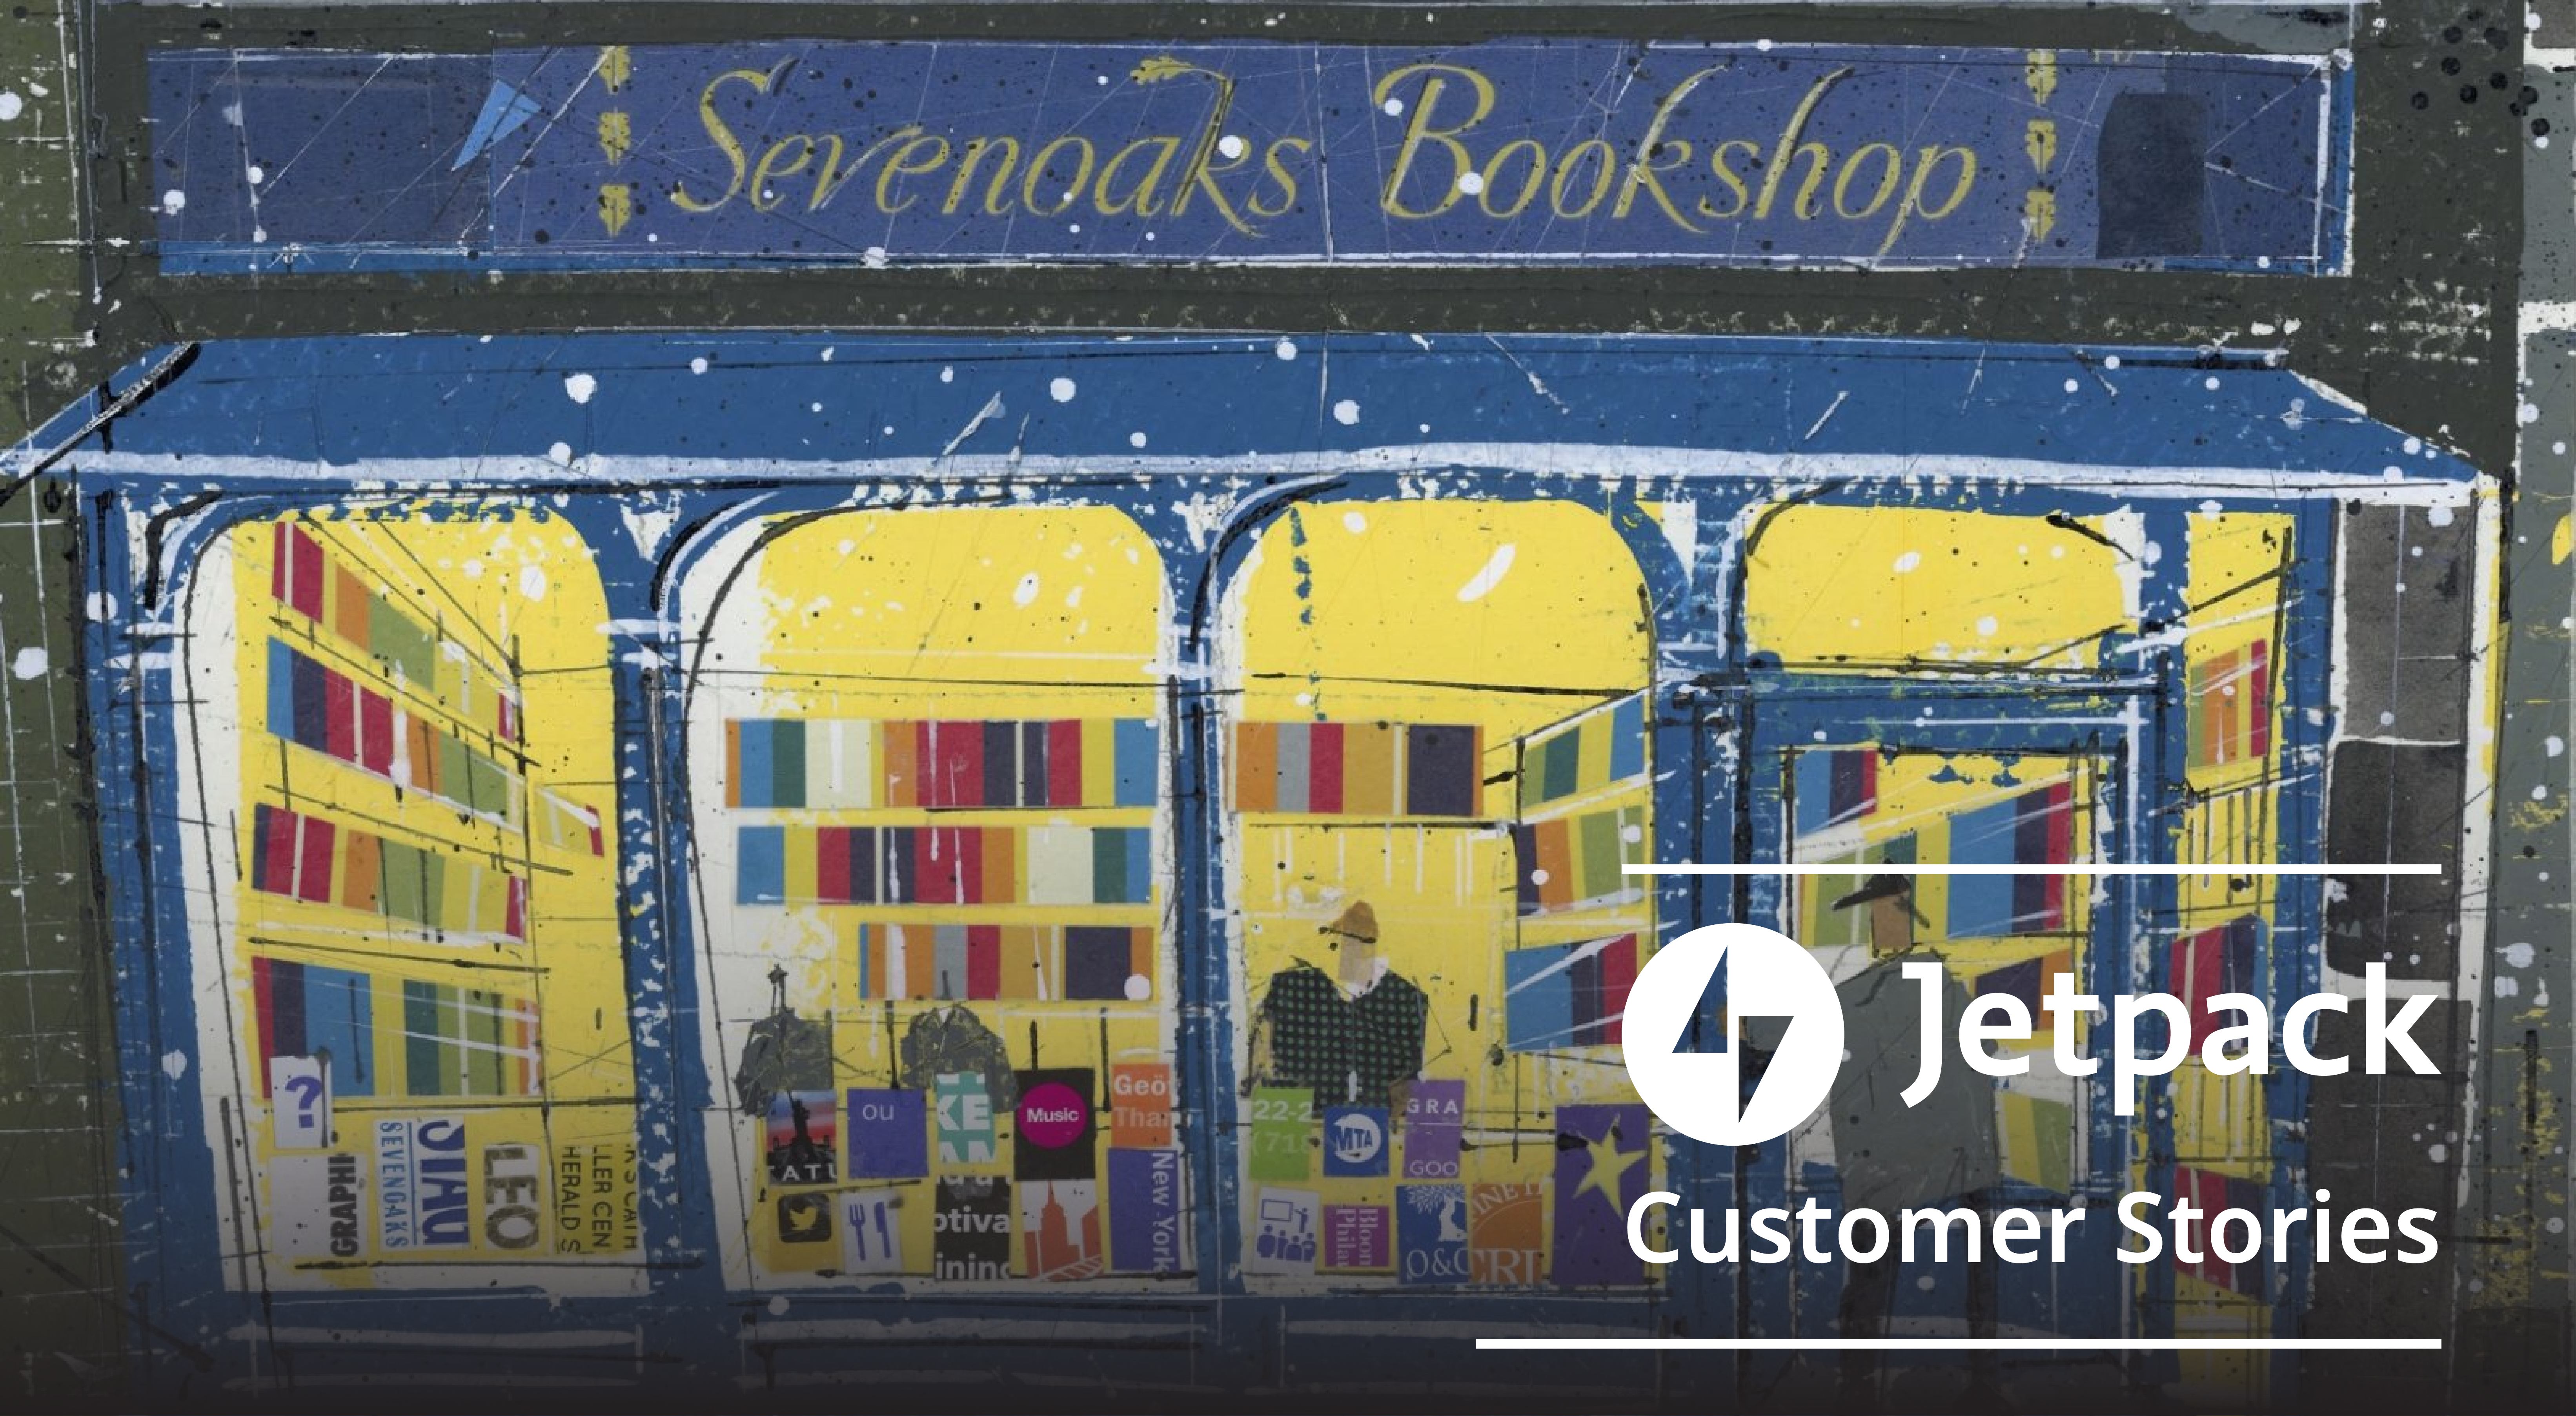 How Jetpack Backup Saved the Day for a Community Bookshop in the UK